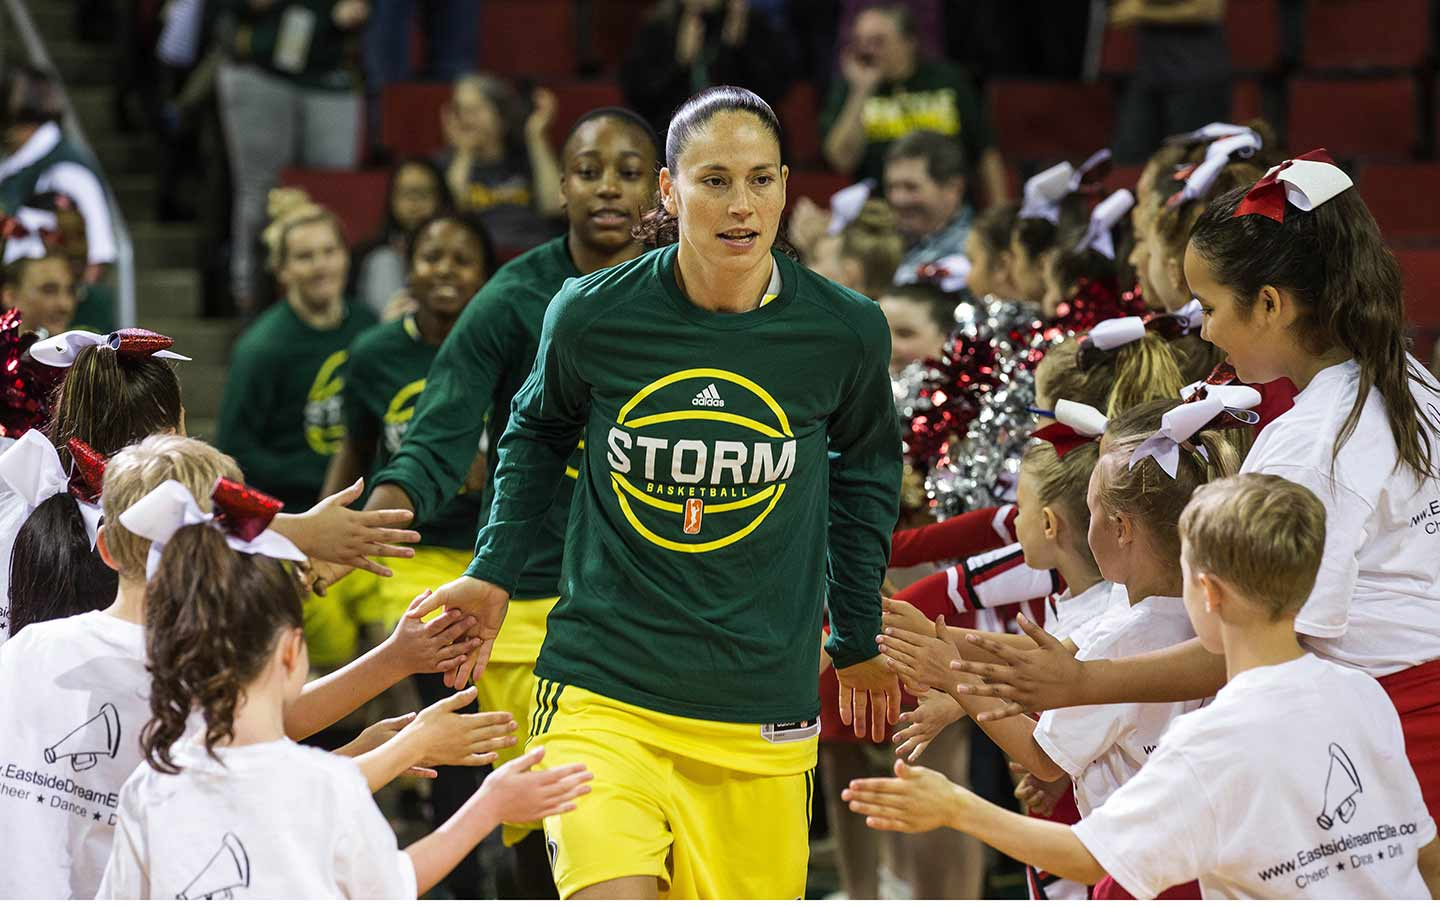 Seattle Storm players